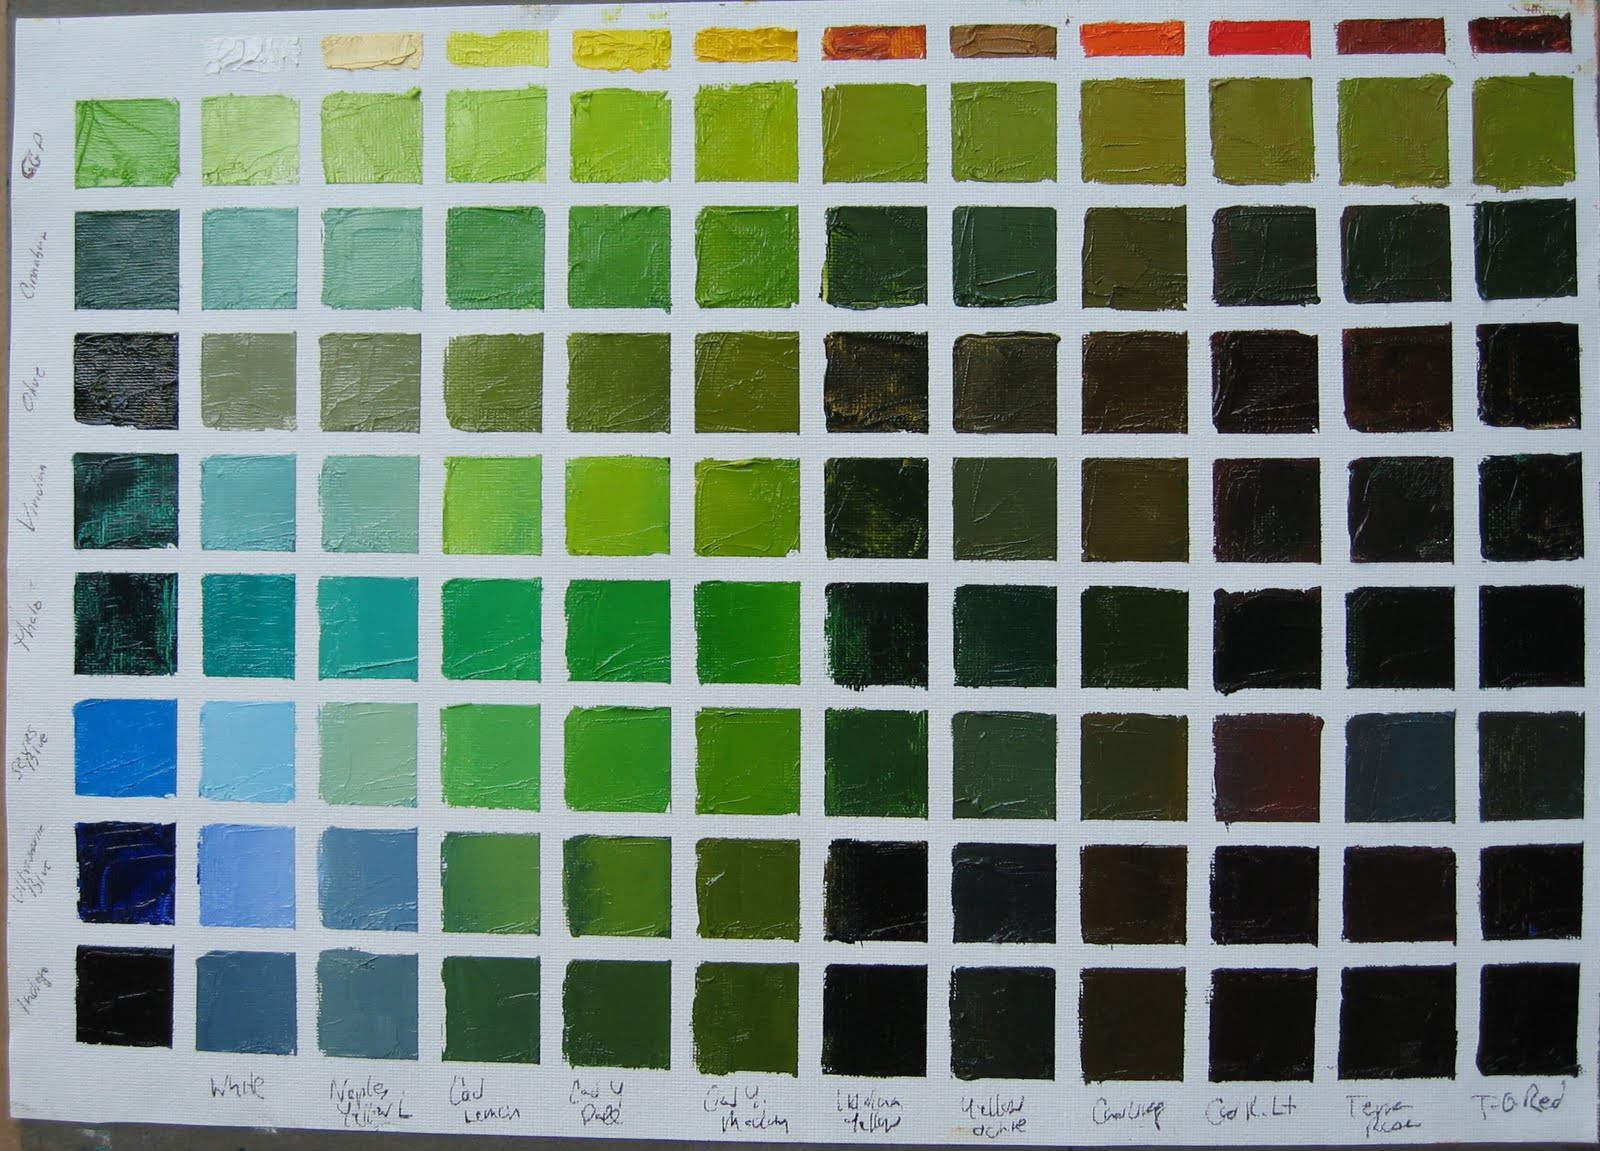 Best ideas about Oil Paint Colors . Save or Pin Pat Fiorello Art Elevates Life Oil Painting Color Now.